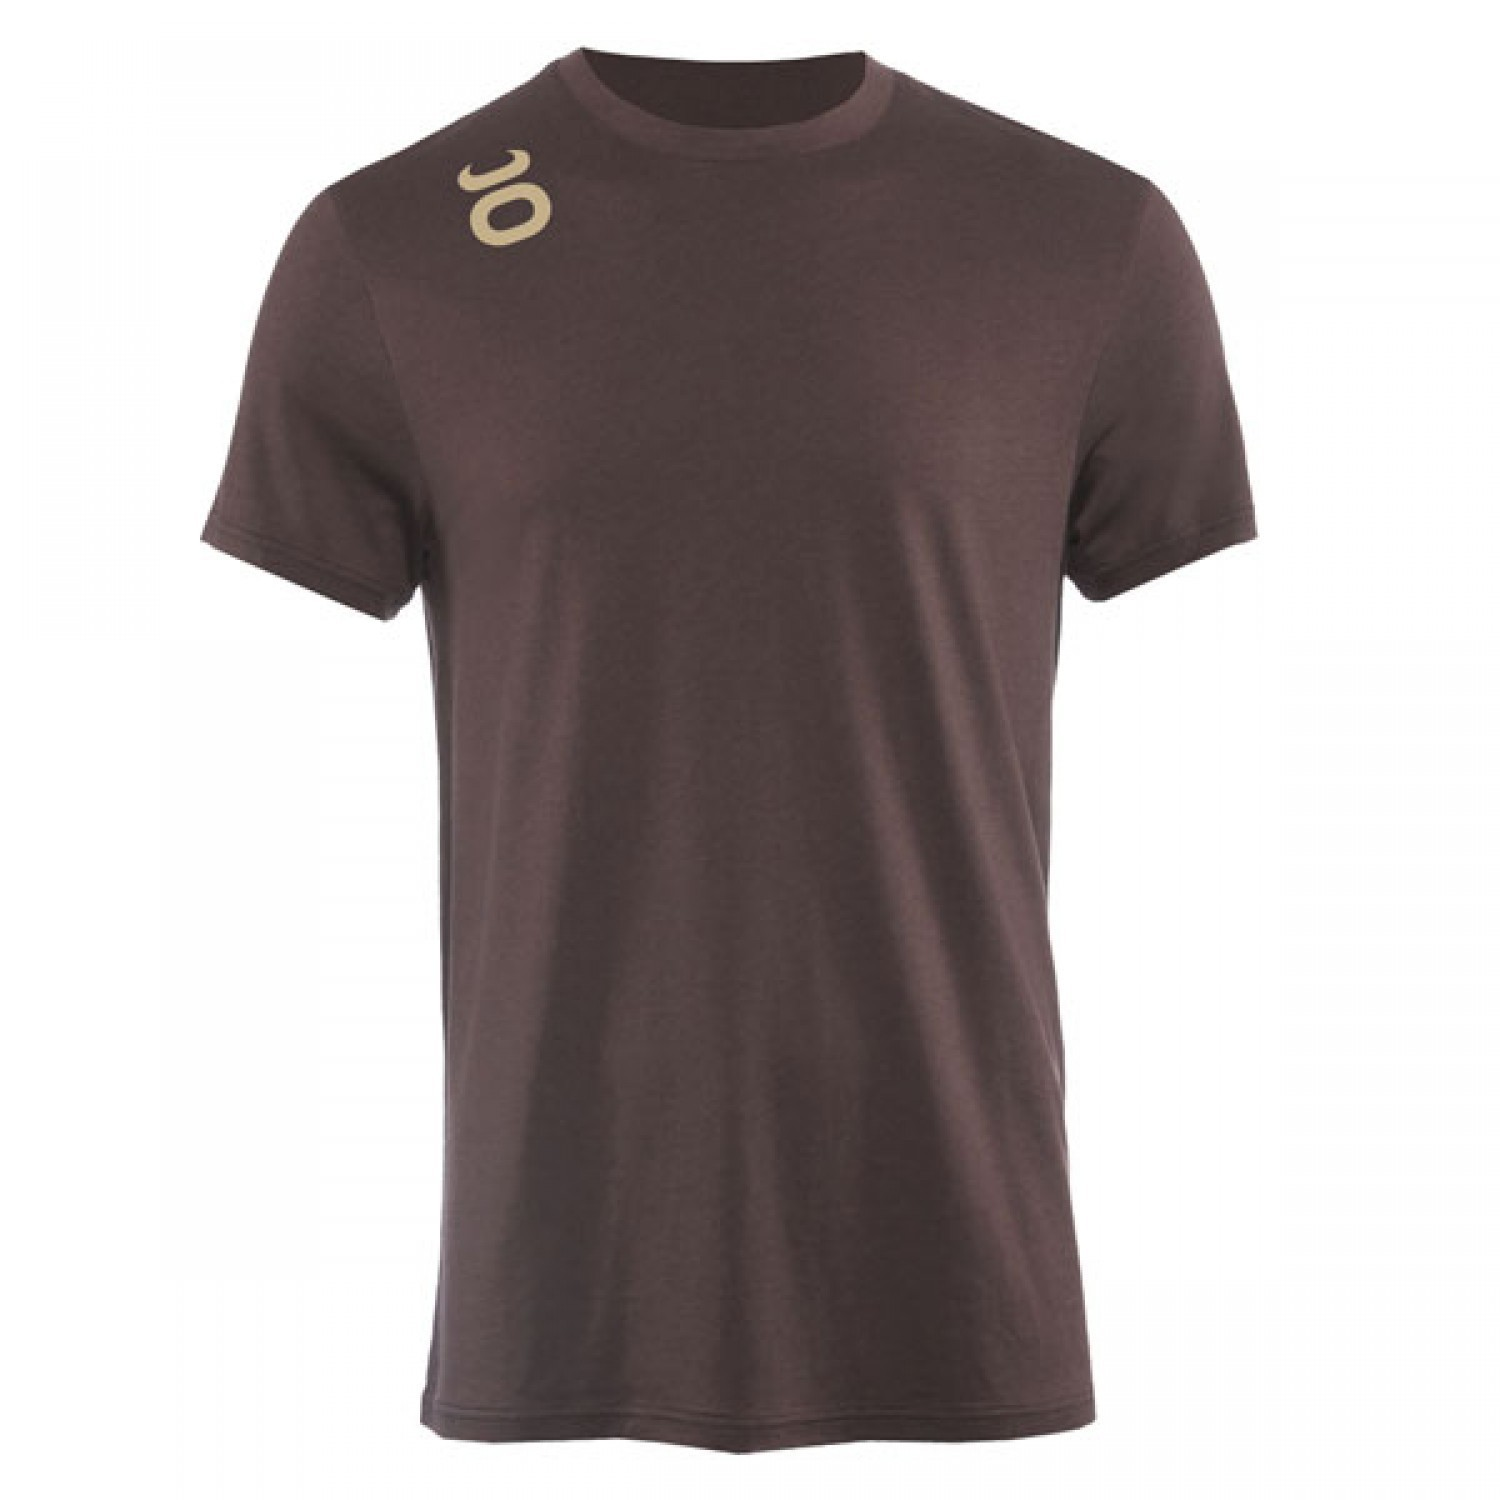 Tenacity Performance Bamboo Crew (Brown)